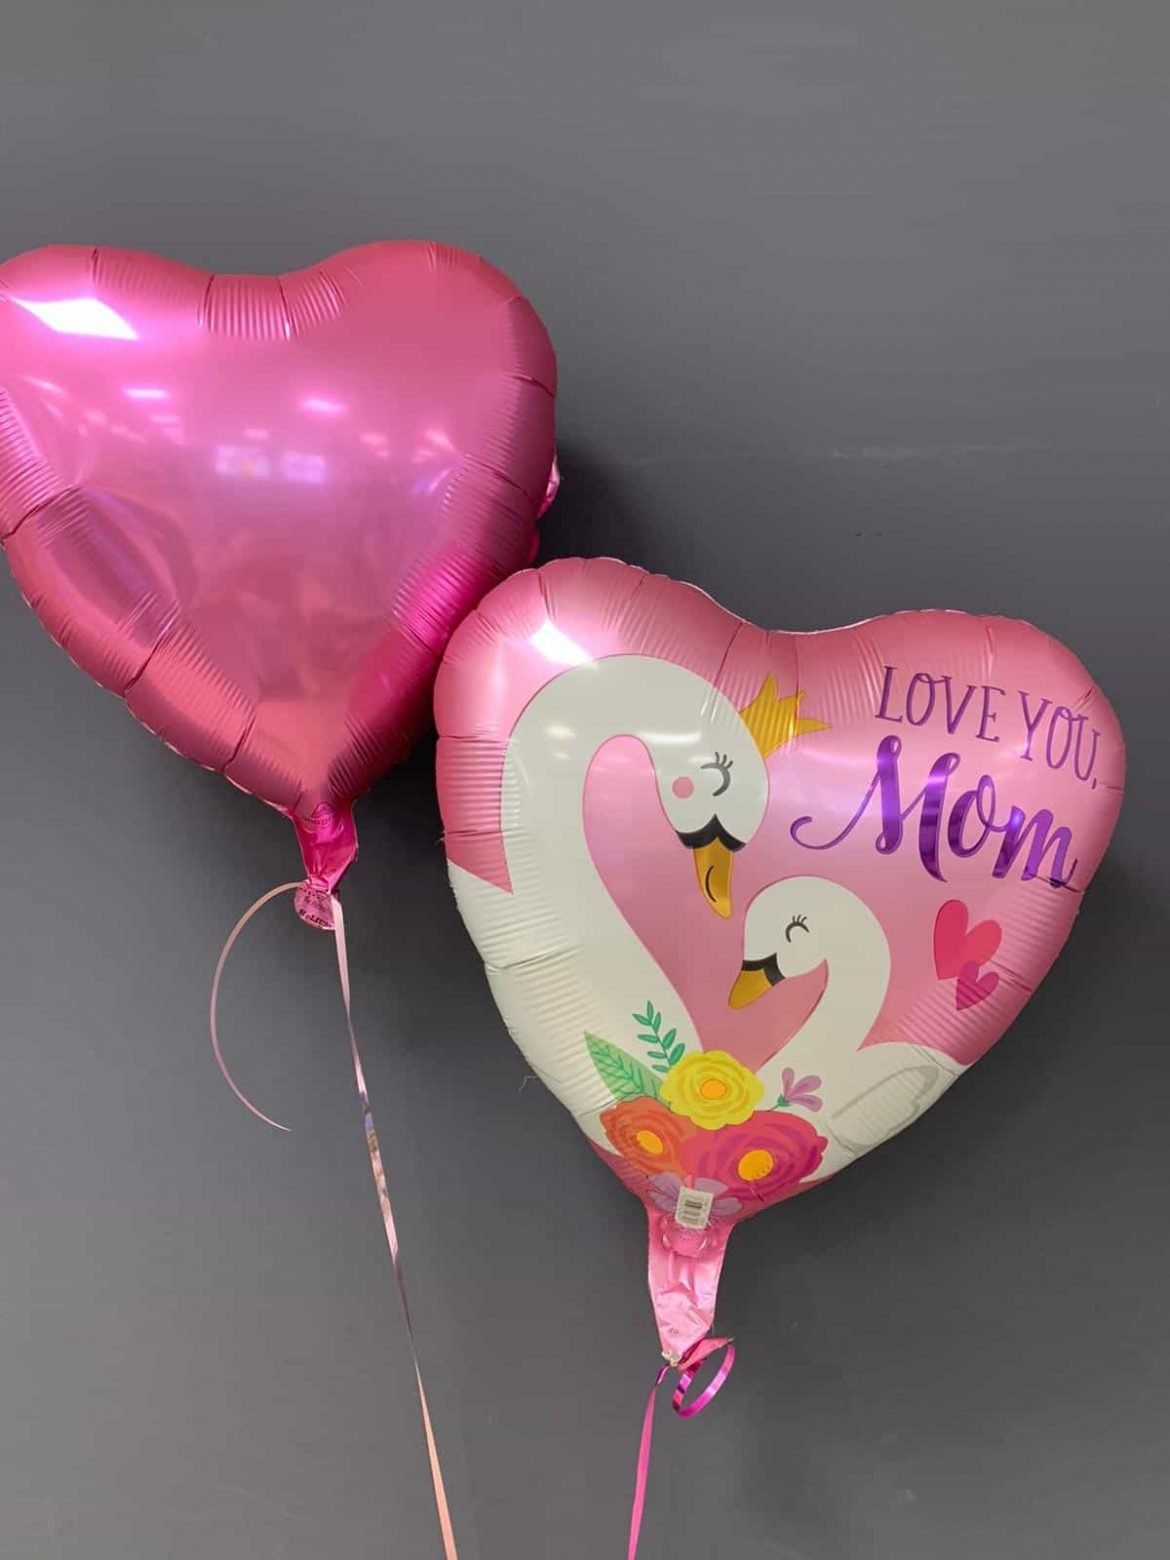 Love you Mom Ballon € 5,50 und Dekoballon € 4,50 1